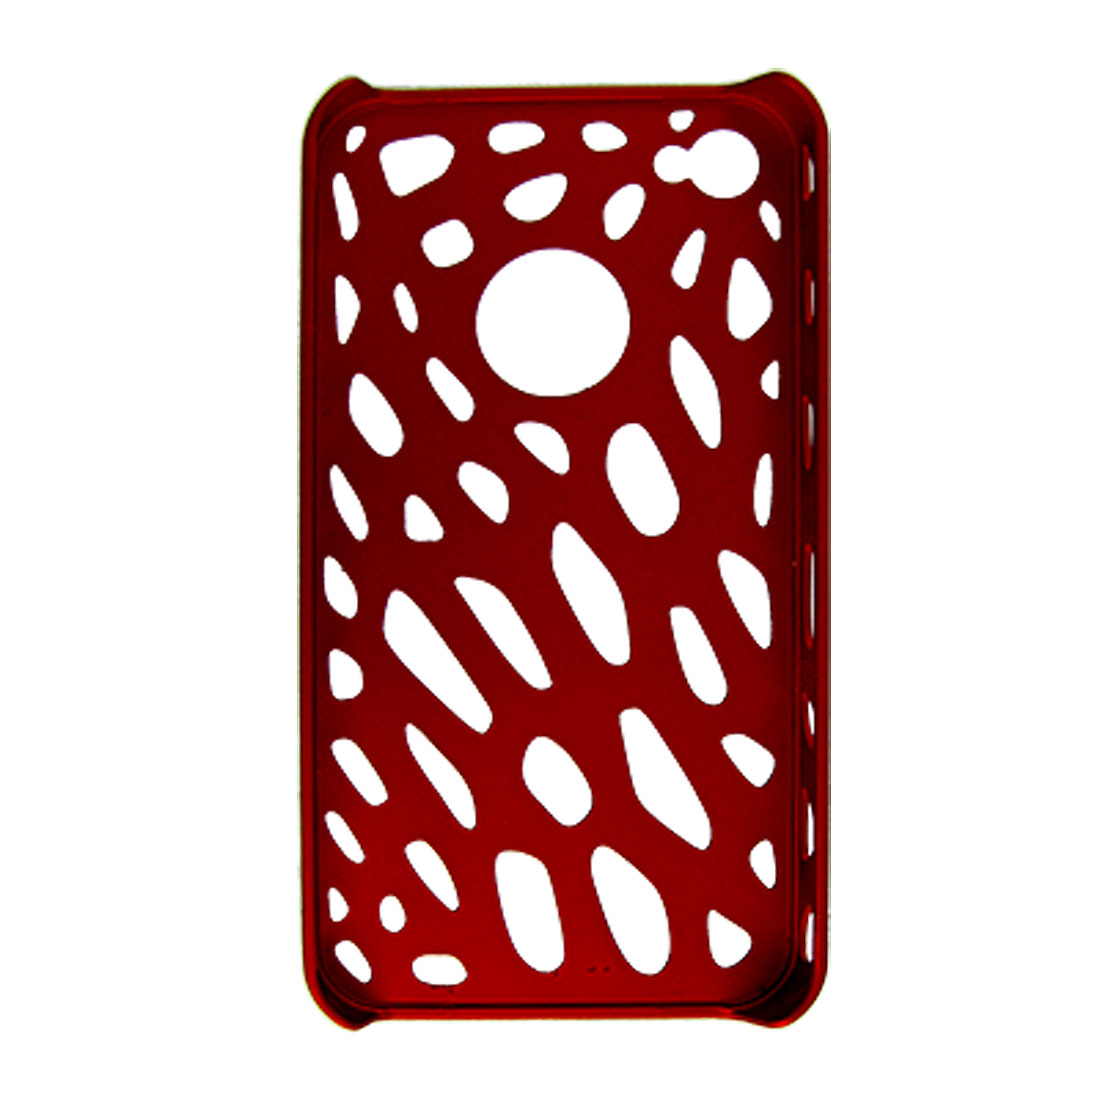 Hole Design Dark Red Rubberized Hard Plastic Shield Case for Apple iPhone 4 4G